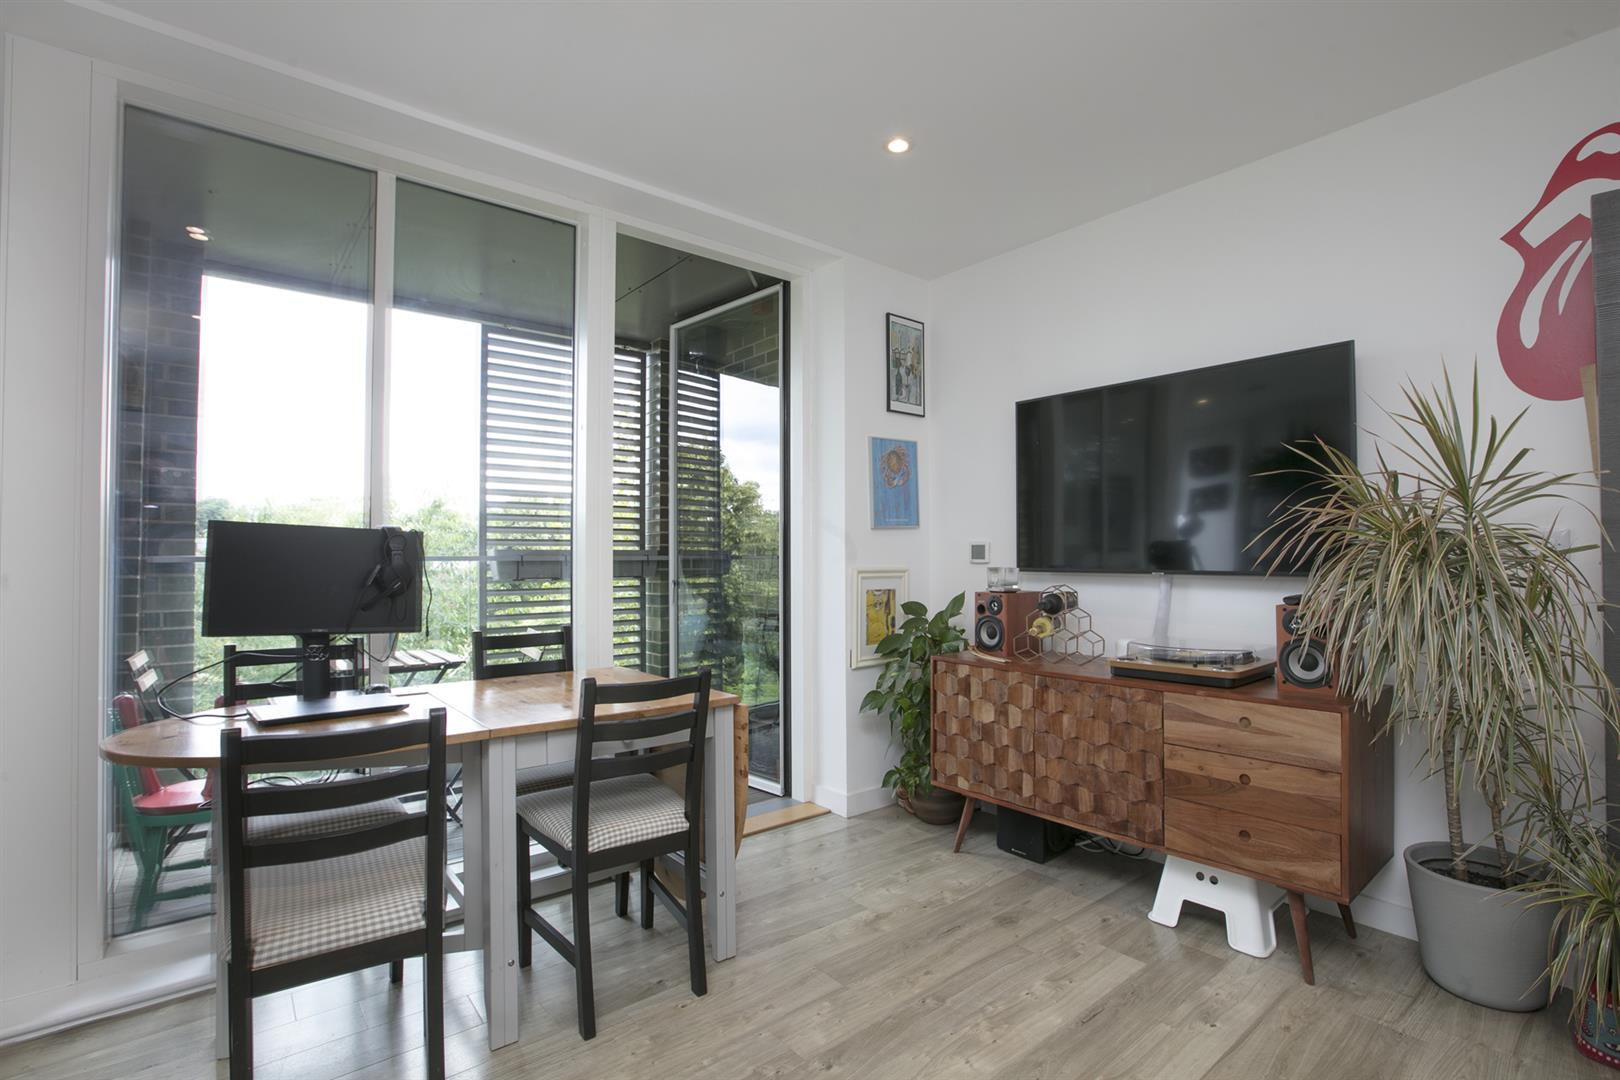 Flat - Purpose Built For Sale in Woods Road, Peckham, SE15 619 view12